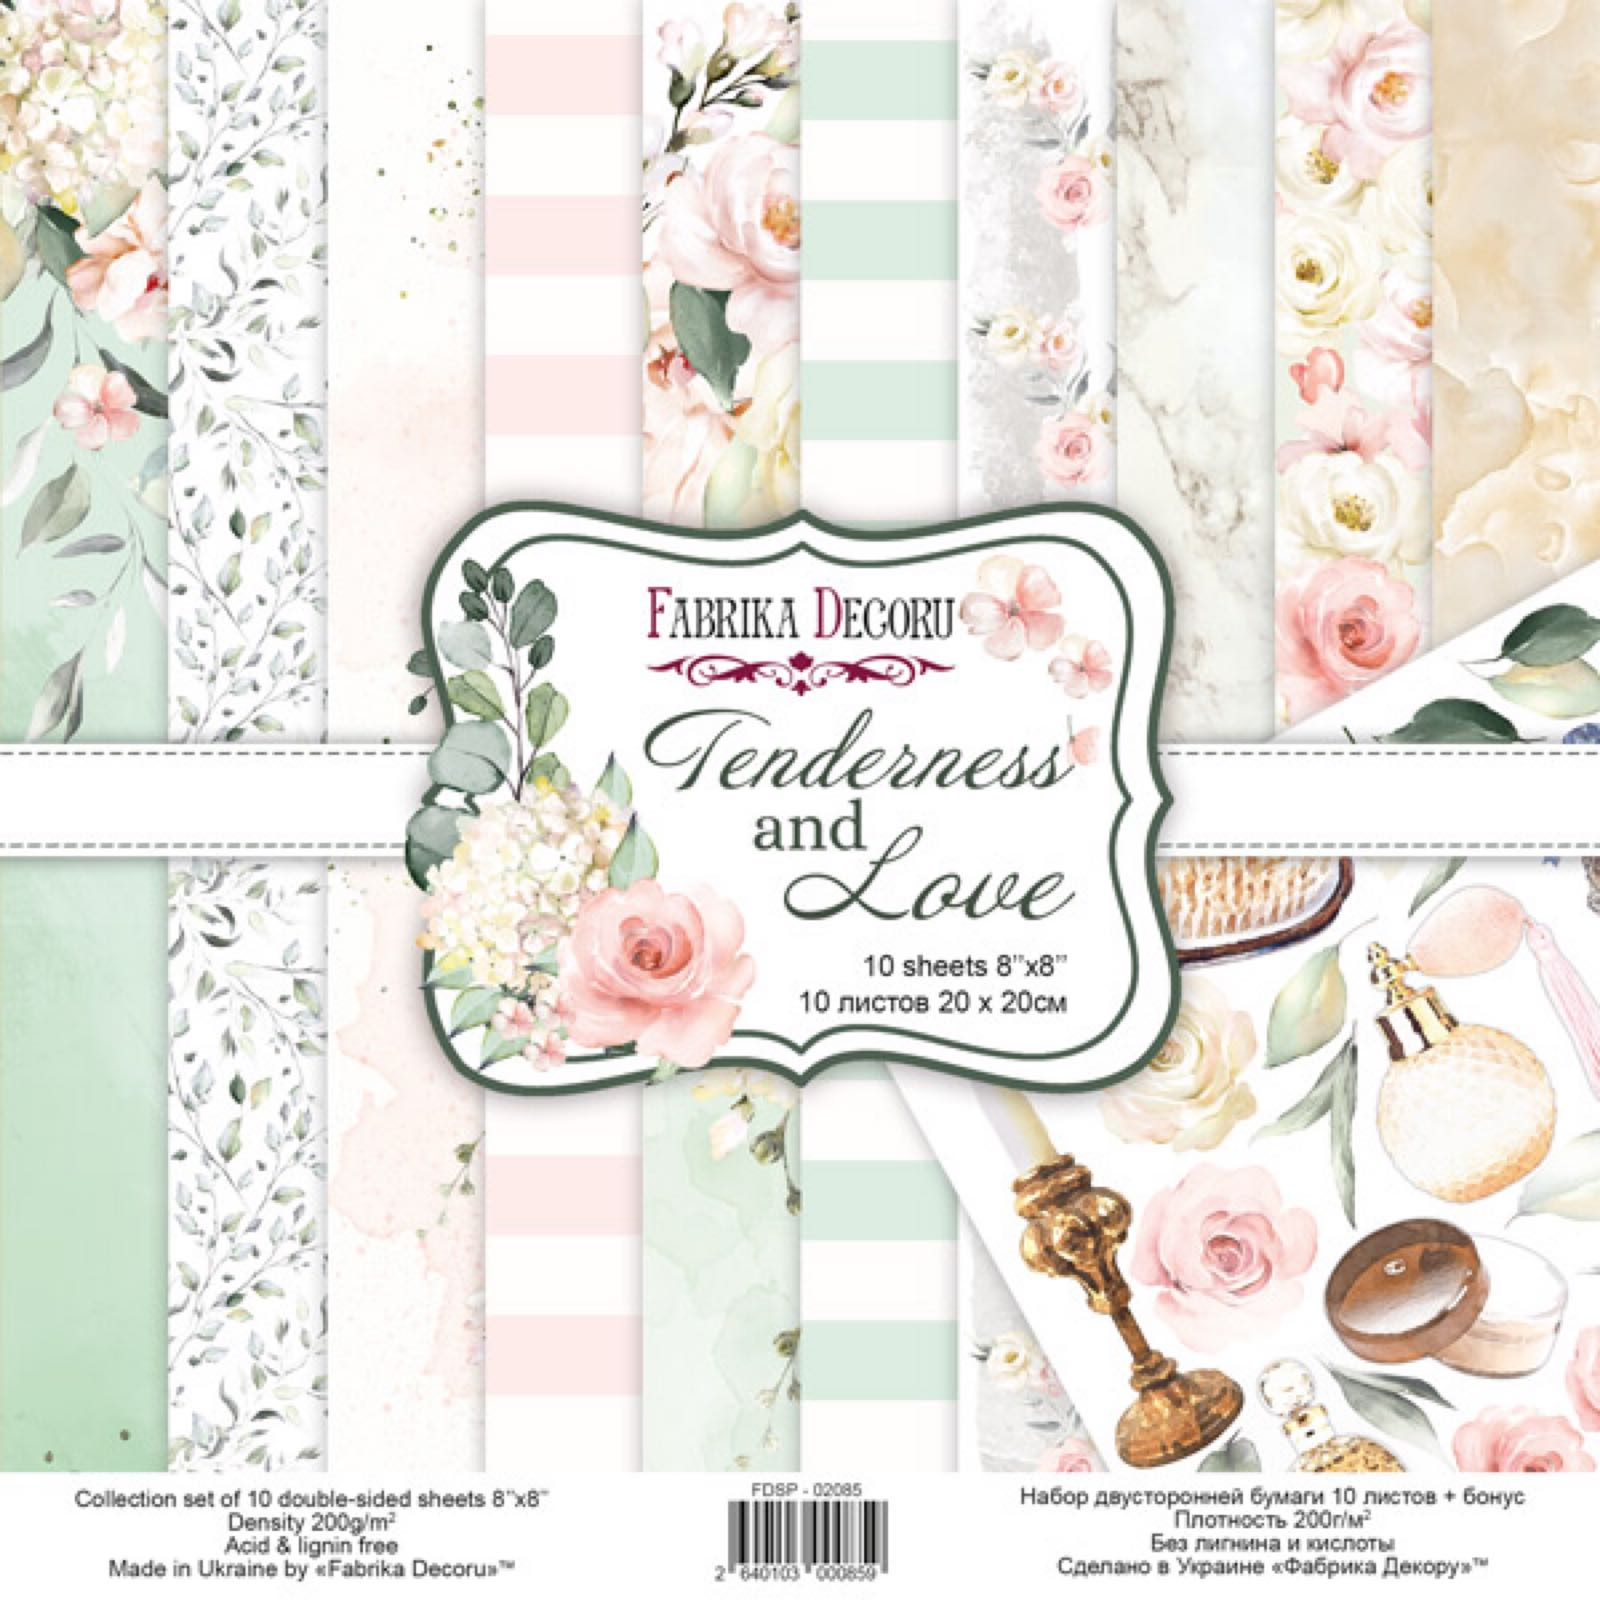 Fabrika Decoru 8x8, Tenderness and love collection paper pack, FDSP-02085